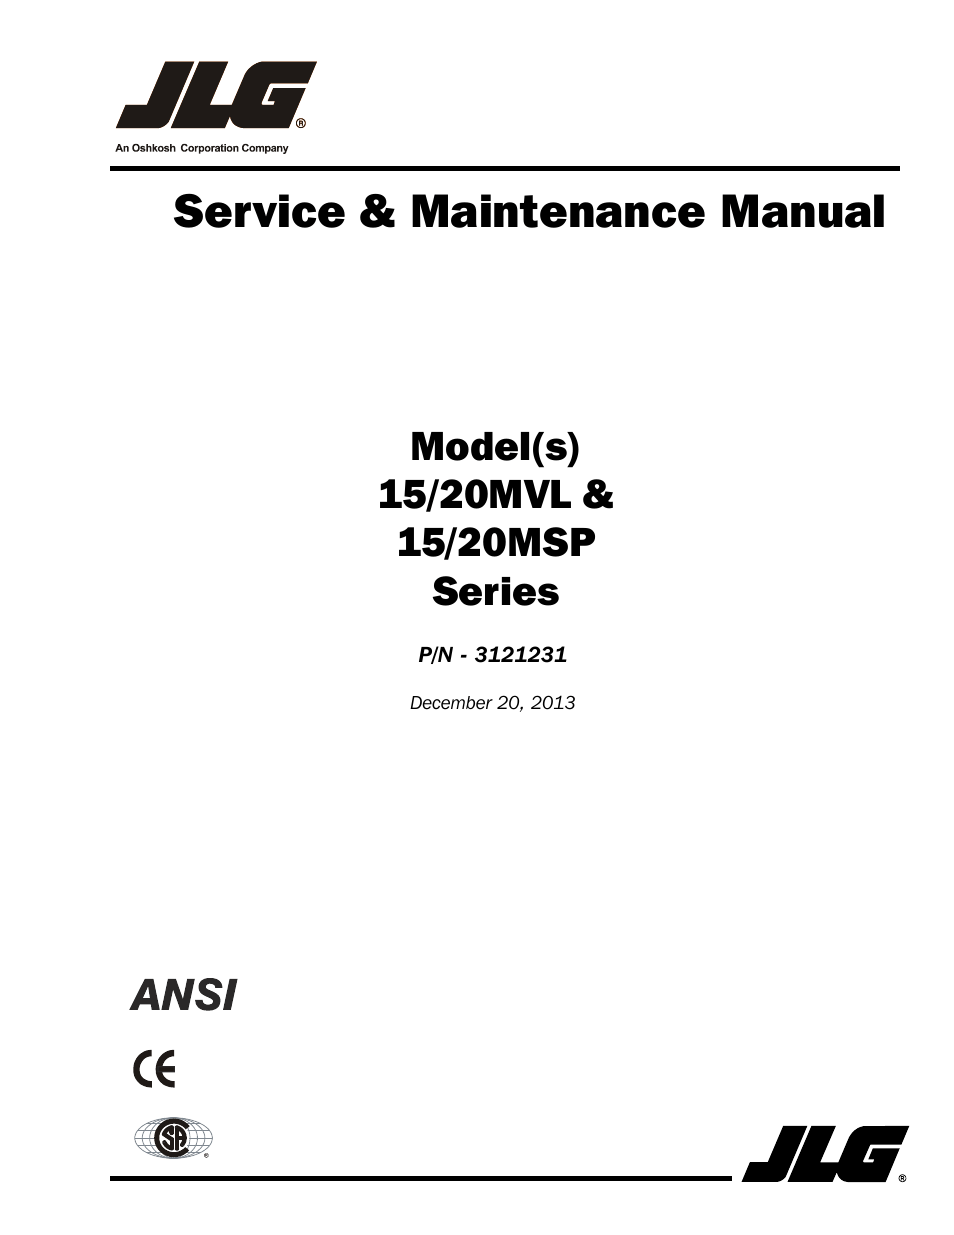 medium resolution of jlg 15 20msp service manual user manual 174 pages also for 15